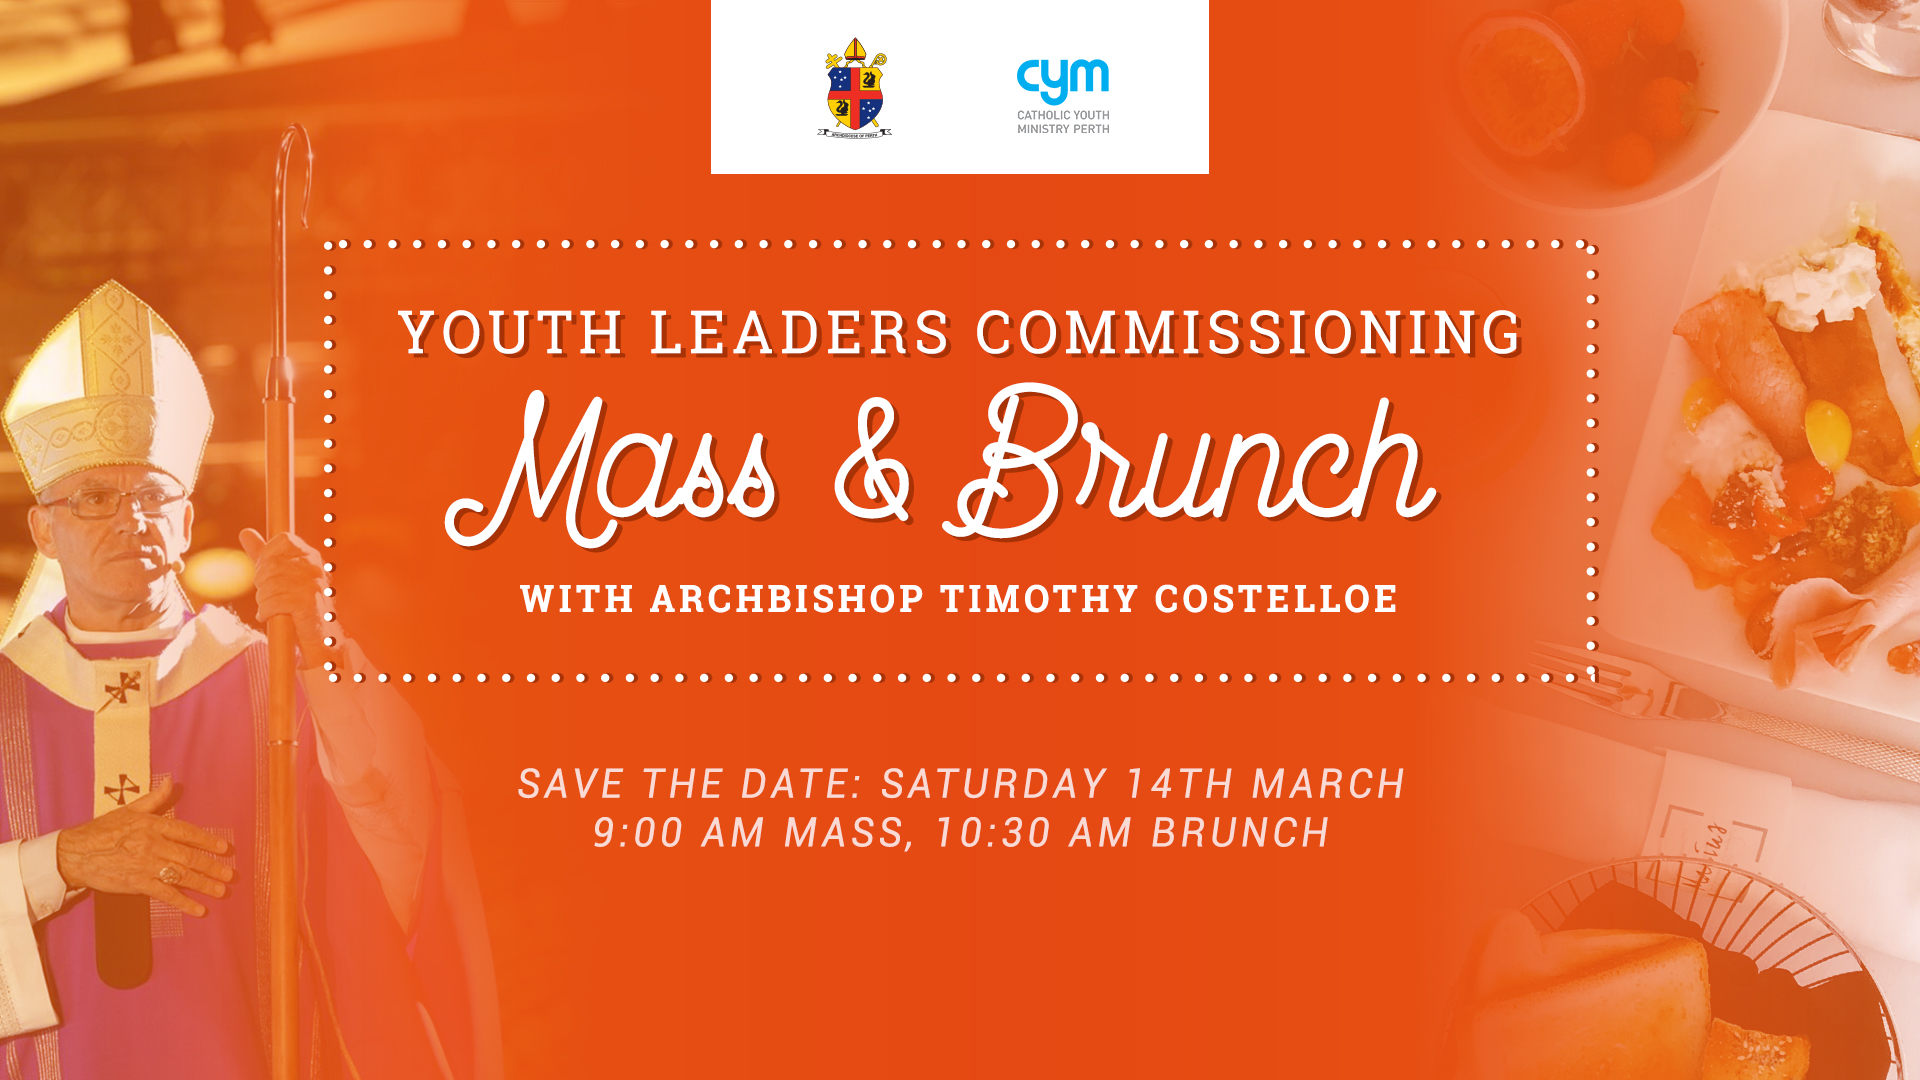 Youth Leaders Commissioning Mass and Brunch